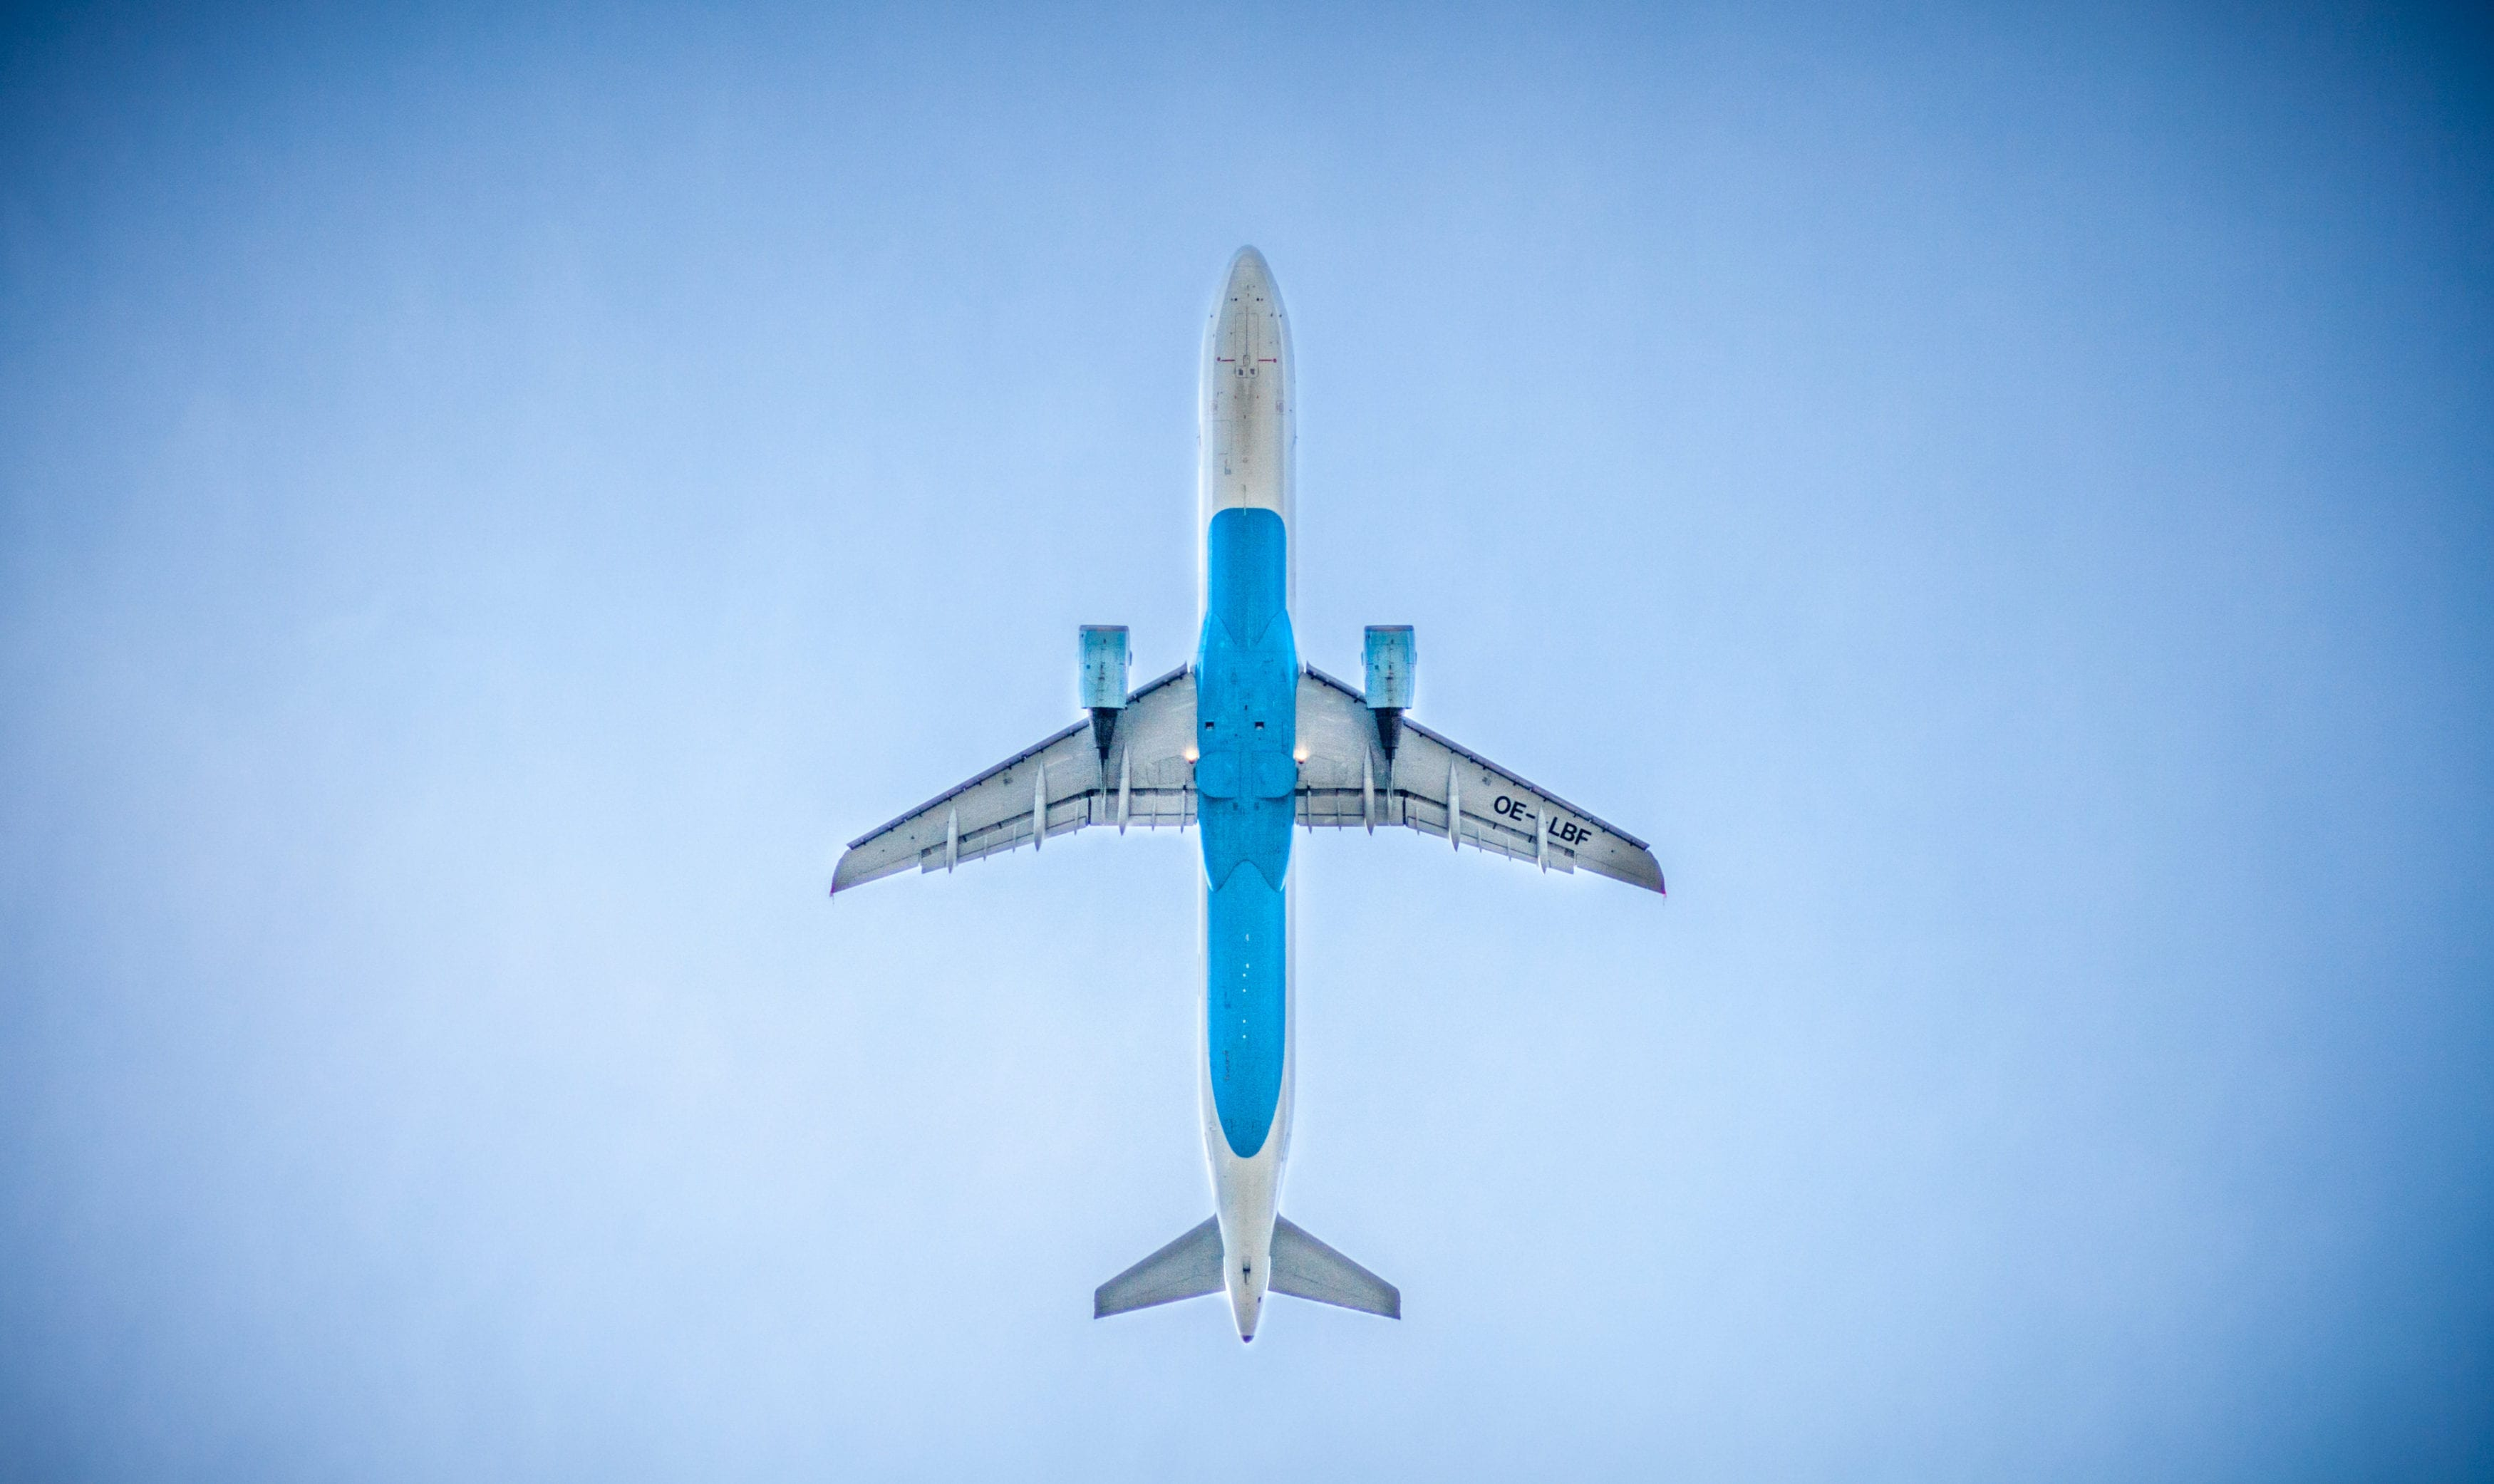 Last Minute Trips To Anywhere Finding The Best Deals Tortuga - Last minute travel deals from ewr